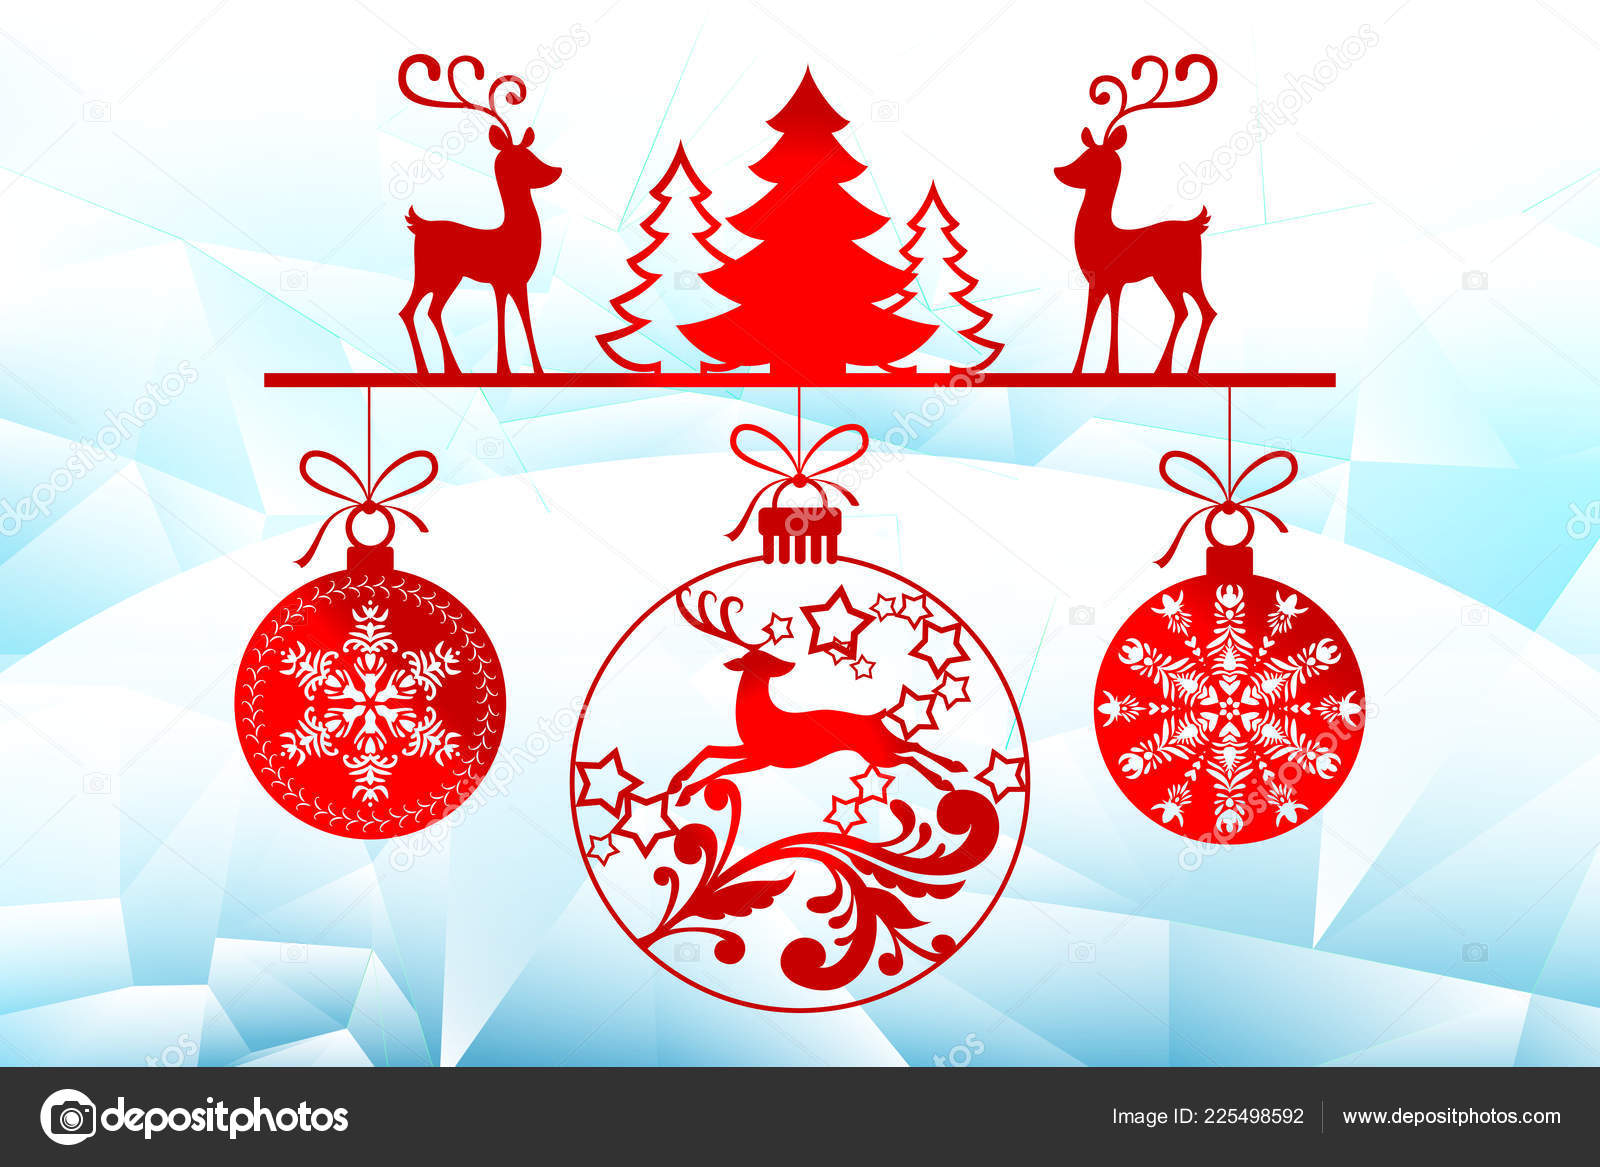 New Year Christmas Laser Cutting Templates Holiday Decorations In